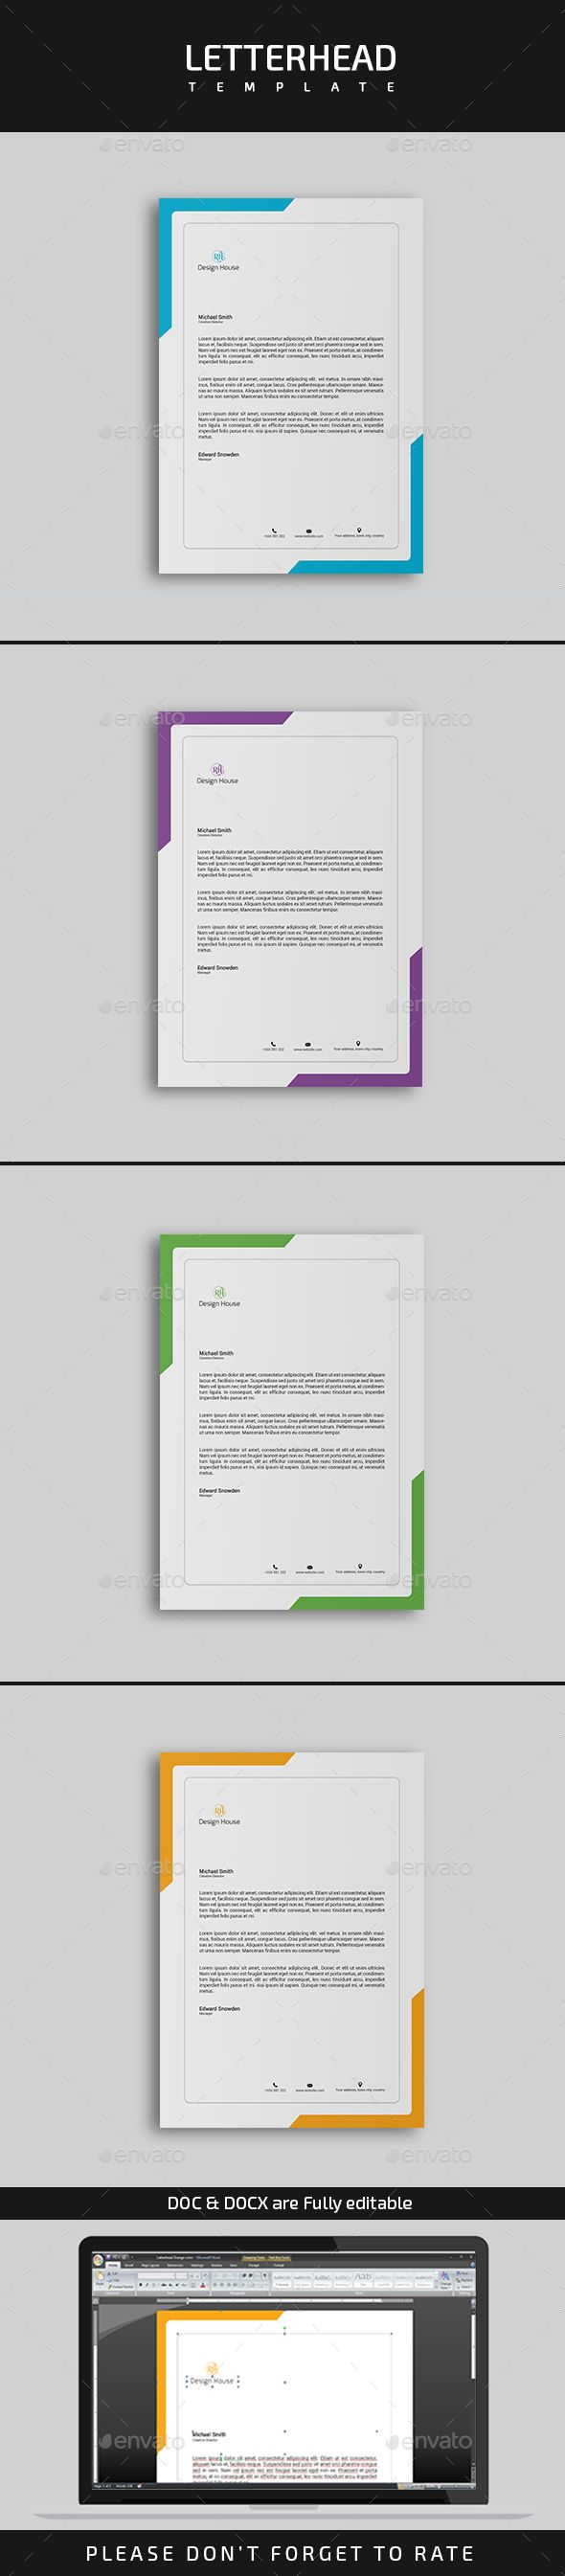 letterhead template stationery print templates